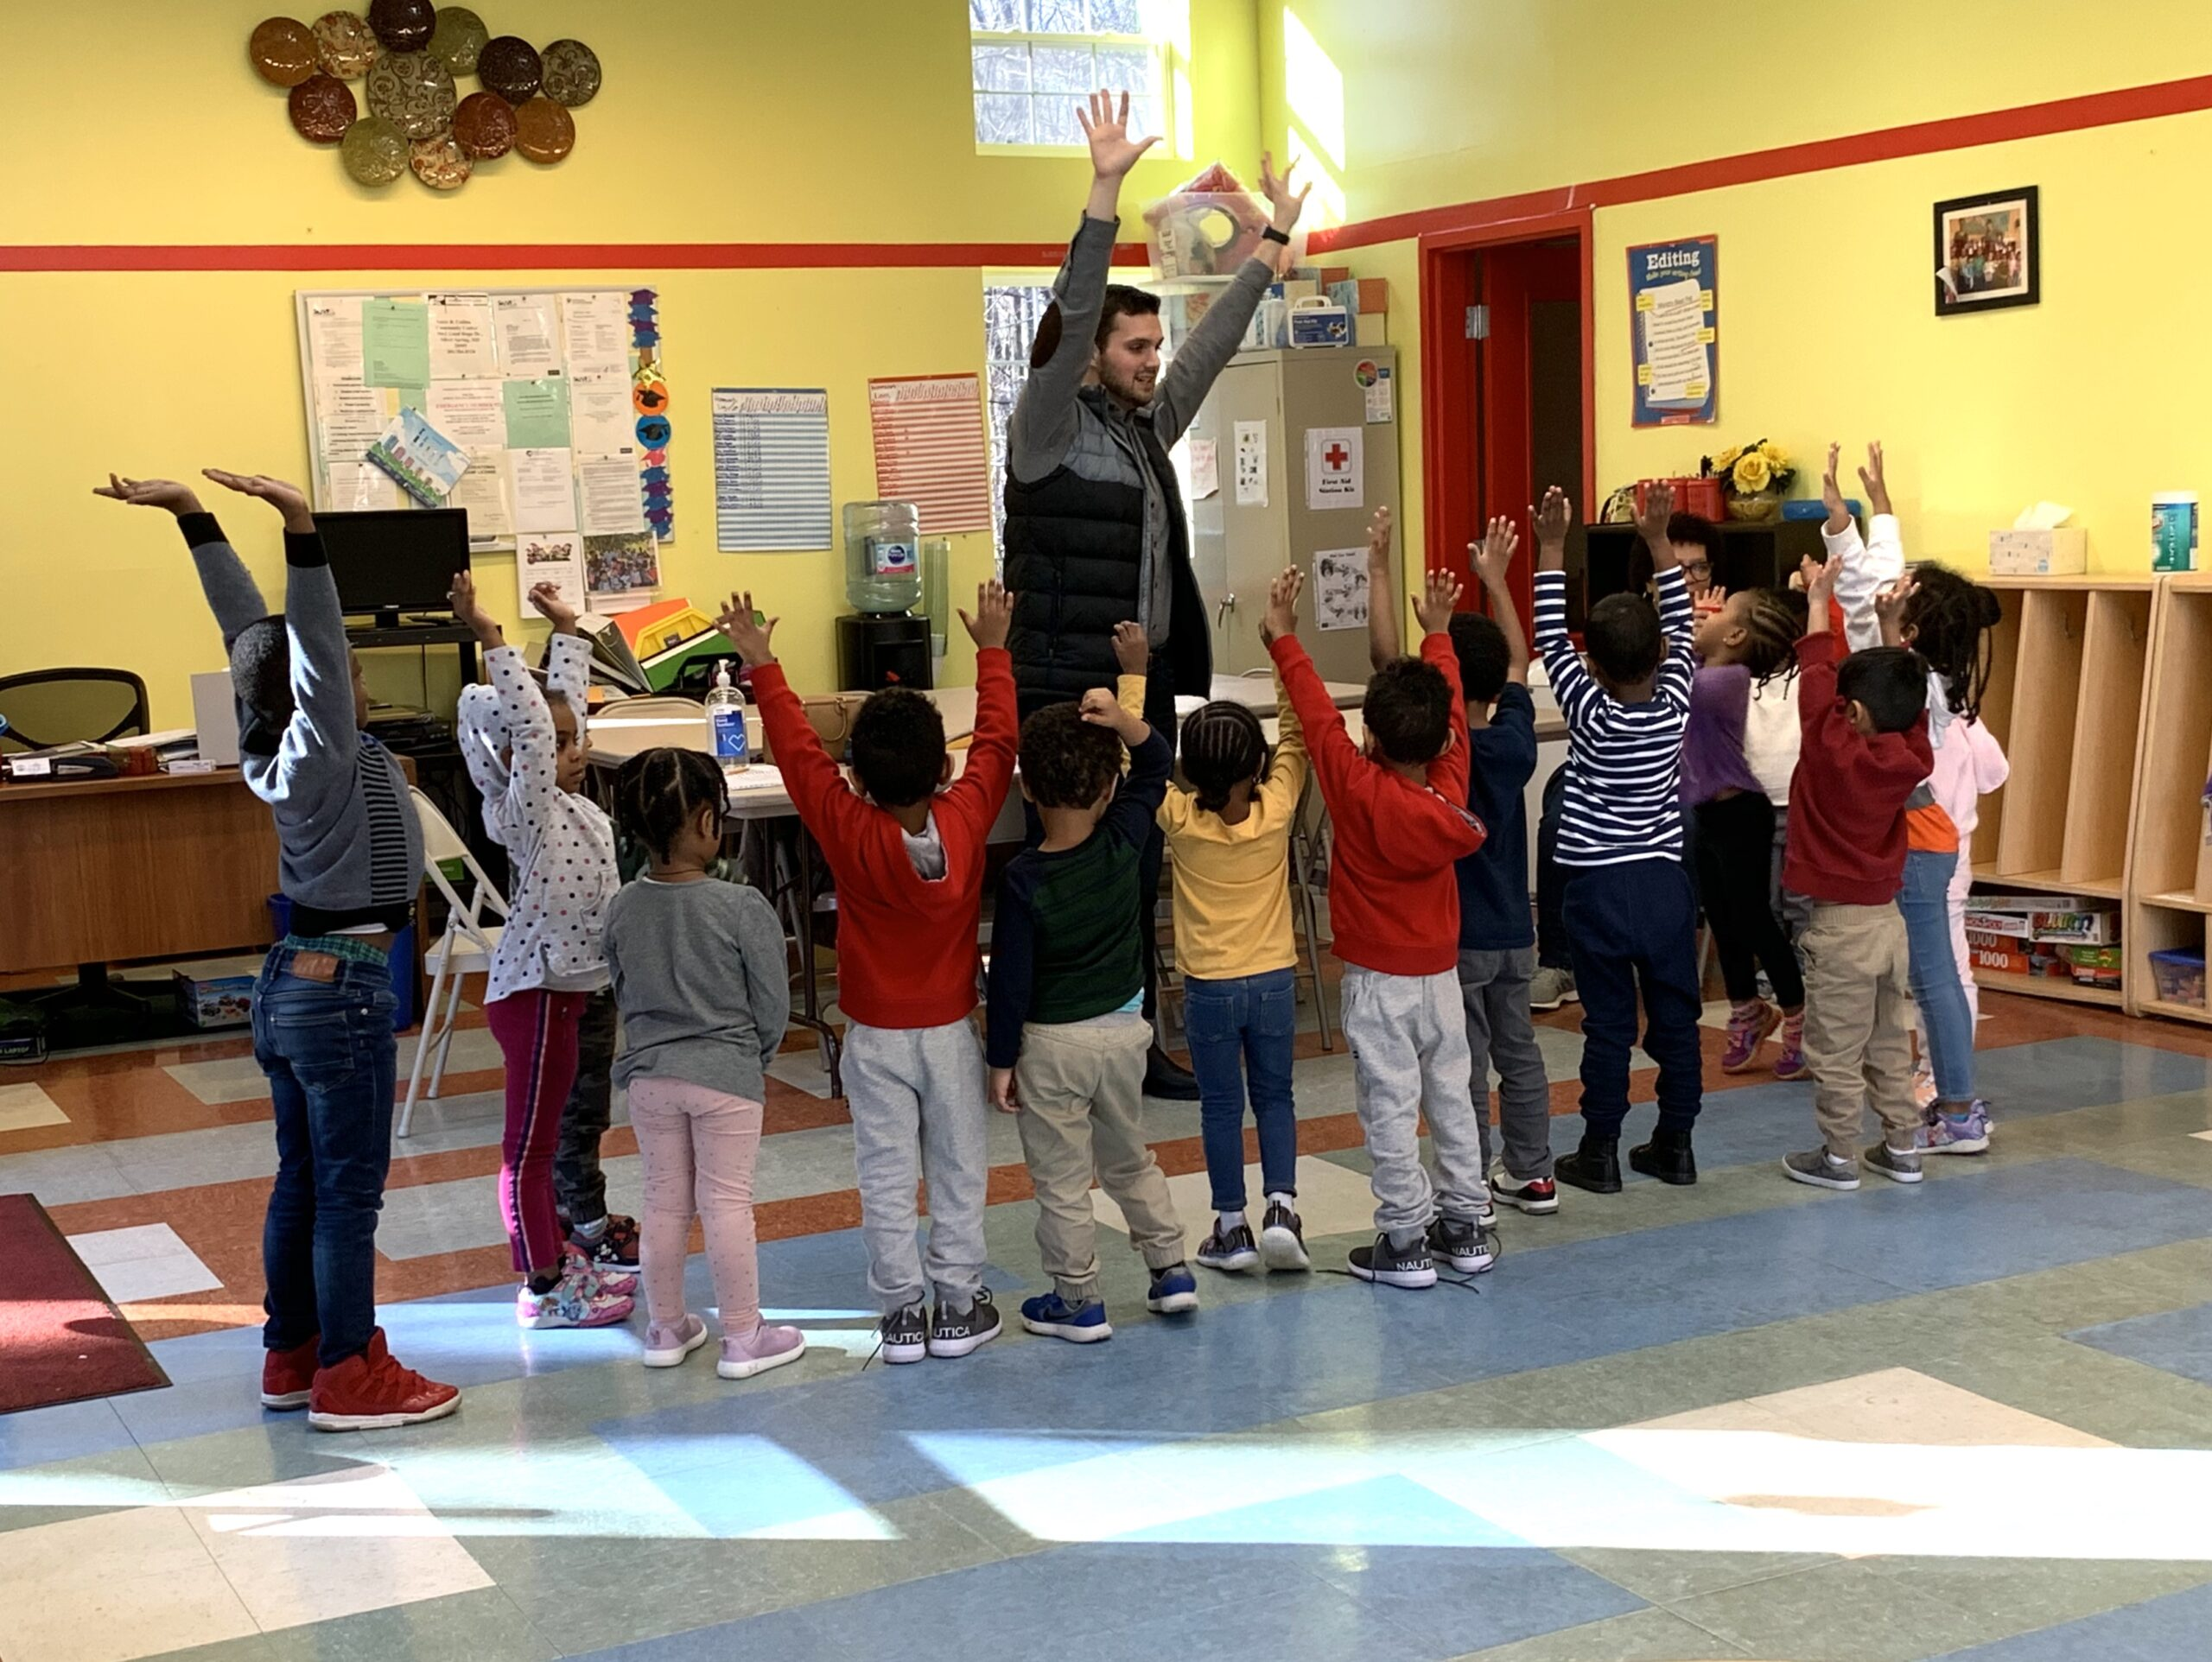 Wesley teaches young students at the Tapestry Music Program